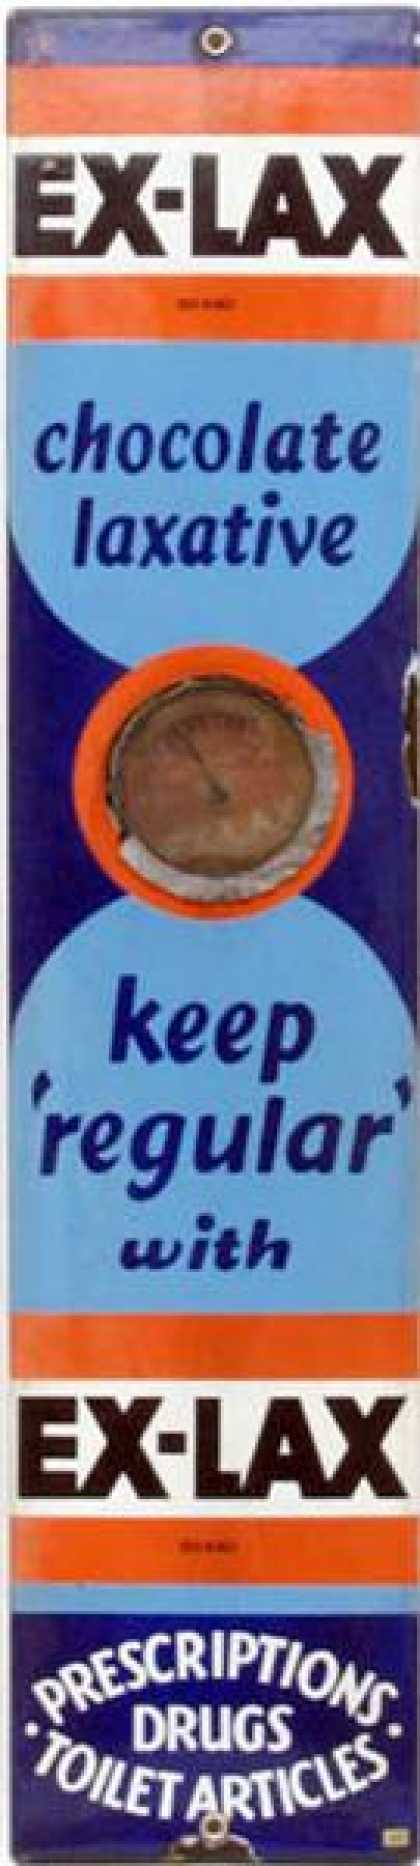 Exlax Laxative Chocolate Thermometer Sign